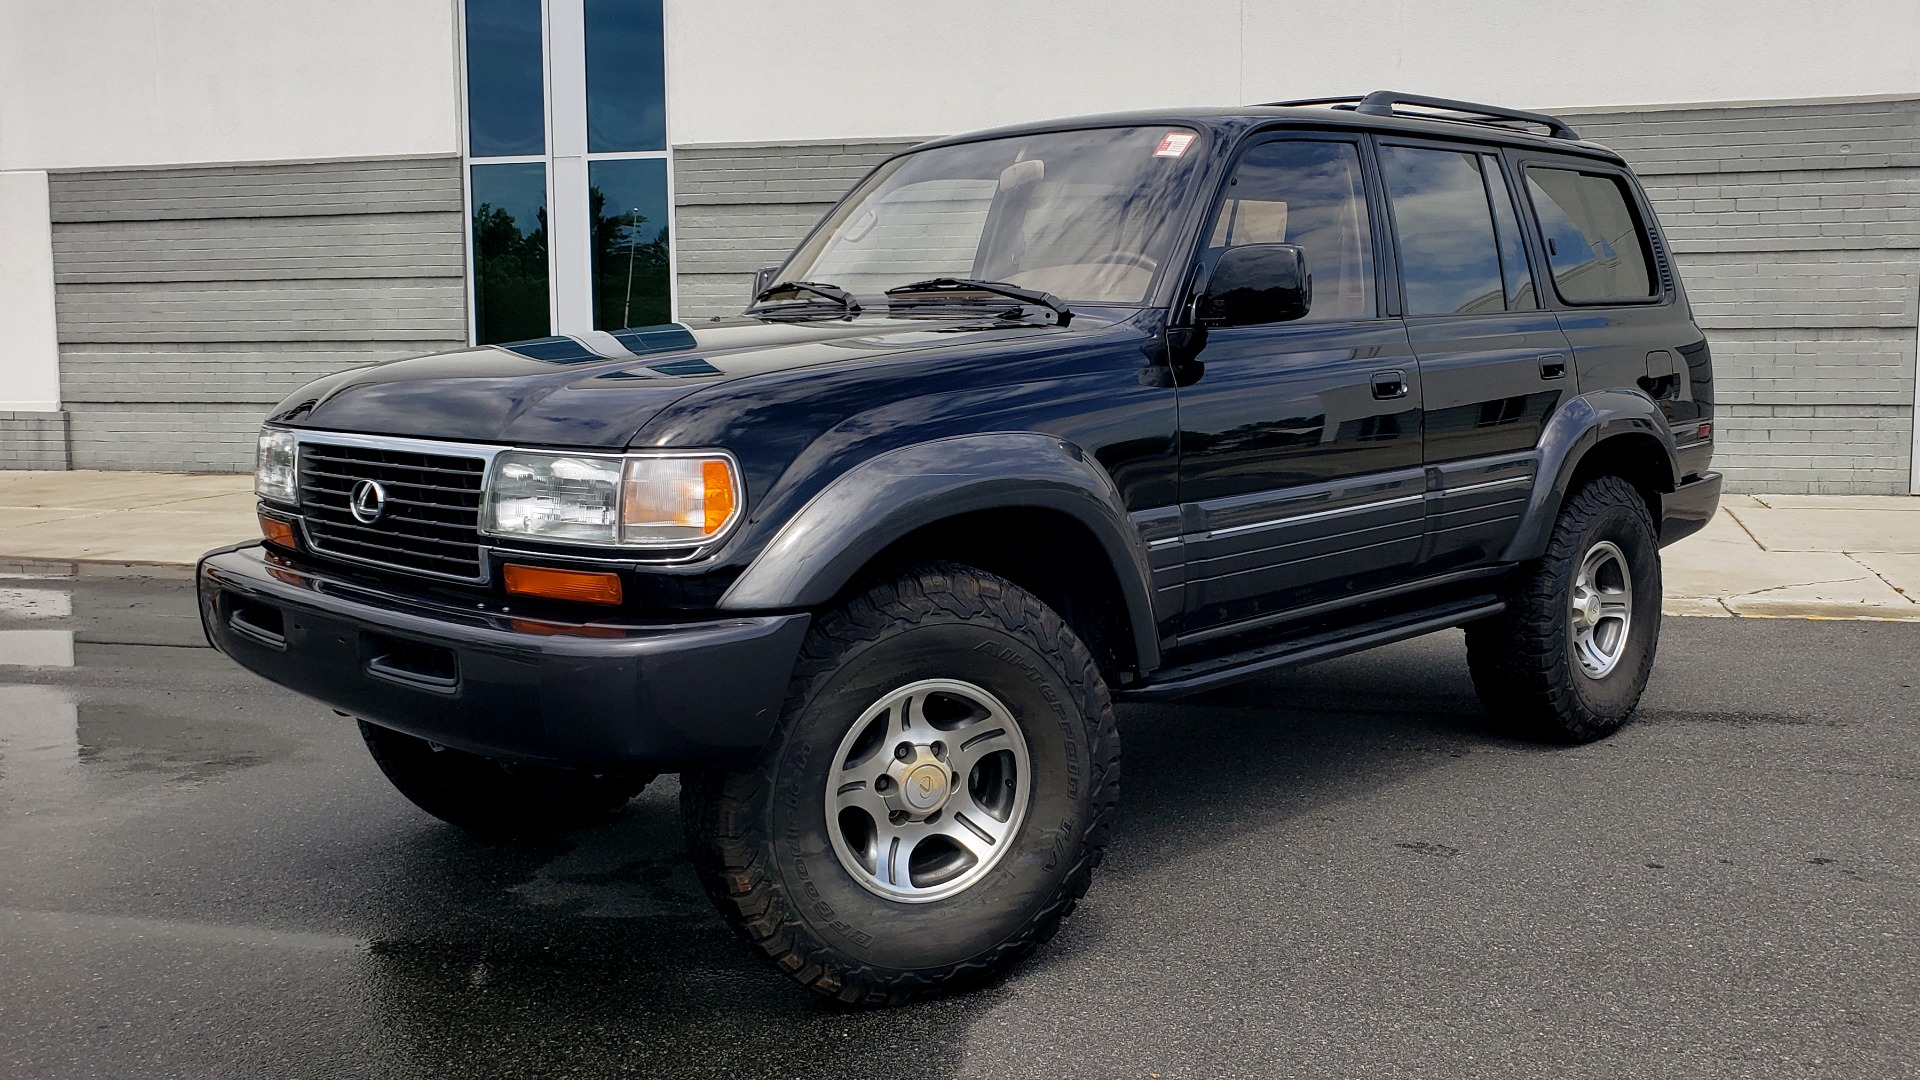 Used 1996 Lexus LX 450 AWD / 4.5L 6-CYL / 4-SPD AUTO / RUNNING BOARDS / NEW BFG TIRES for sale $49,995 at Formula Imports in Charlotte NC 28227 1